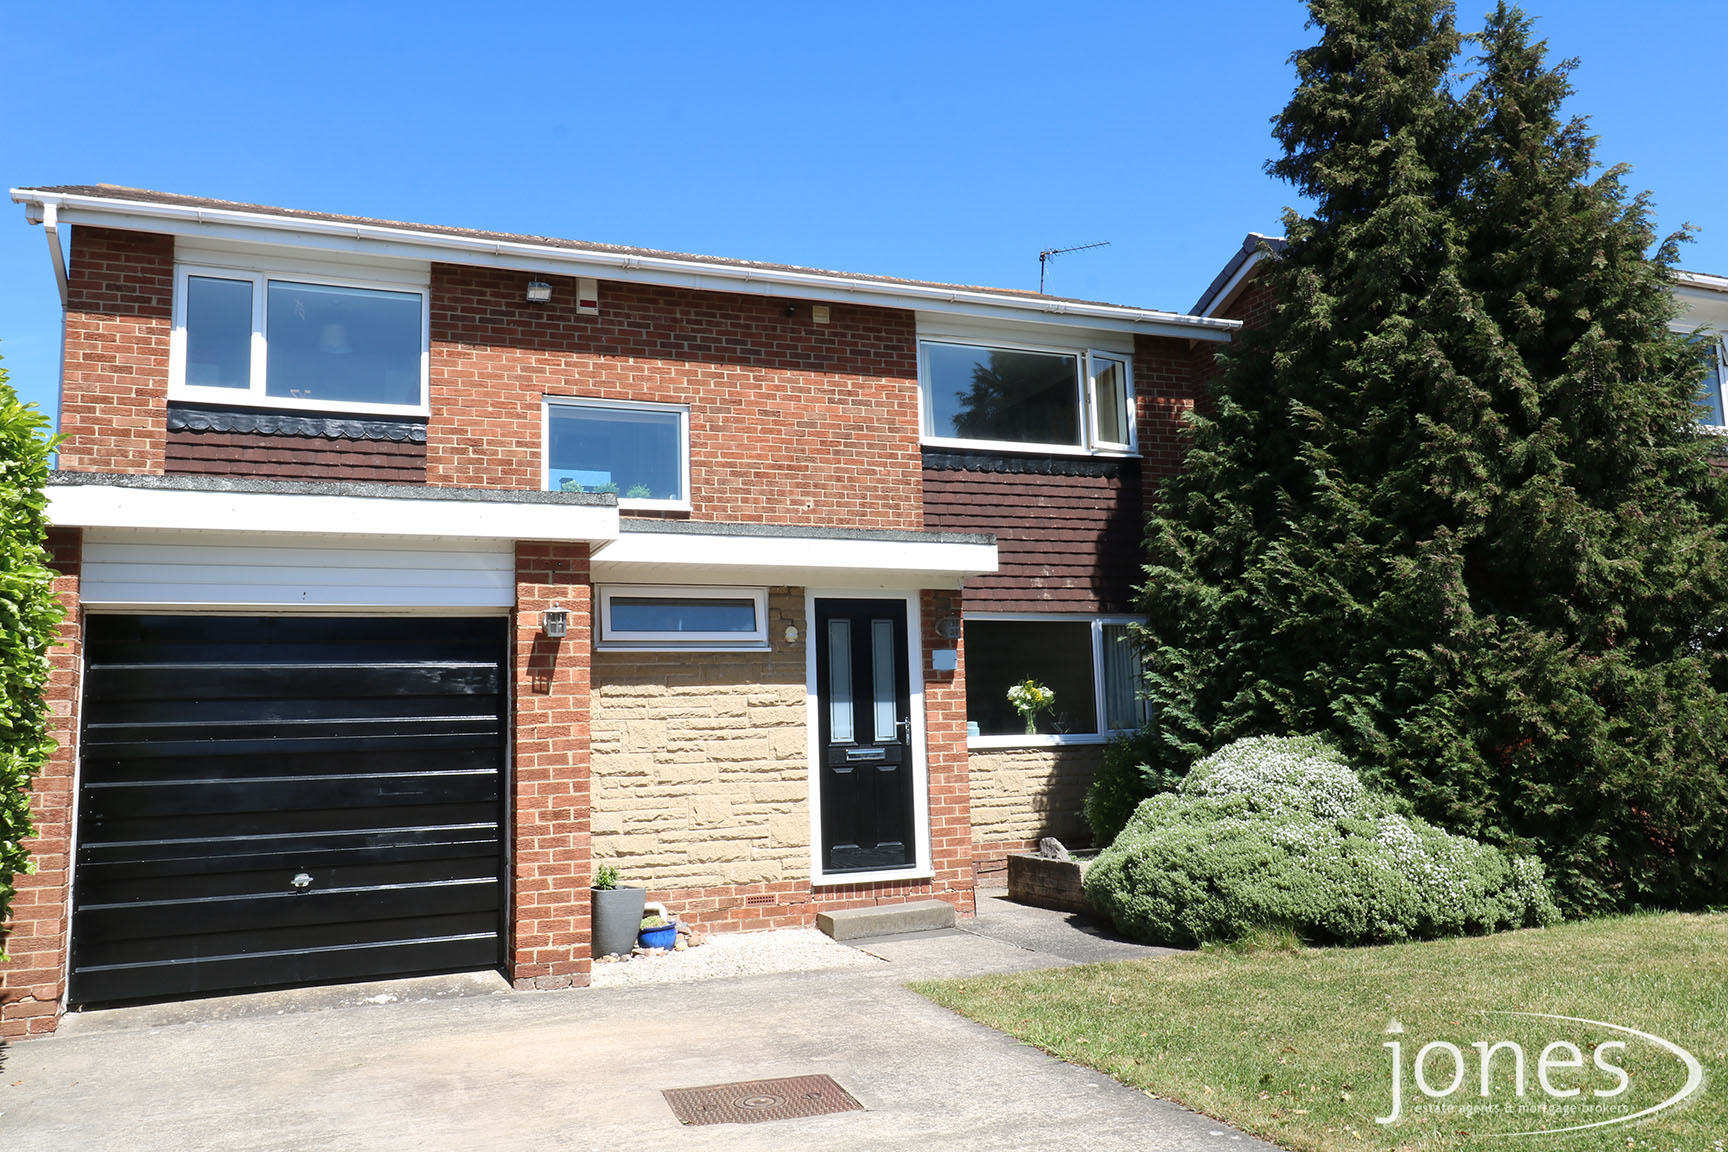 Home for Sale Let - Photo 01 Kielder Drive,Darlington,DL1 2BD